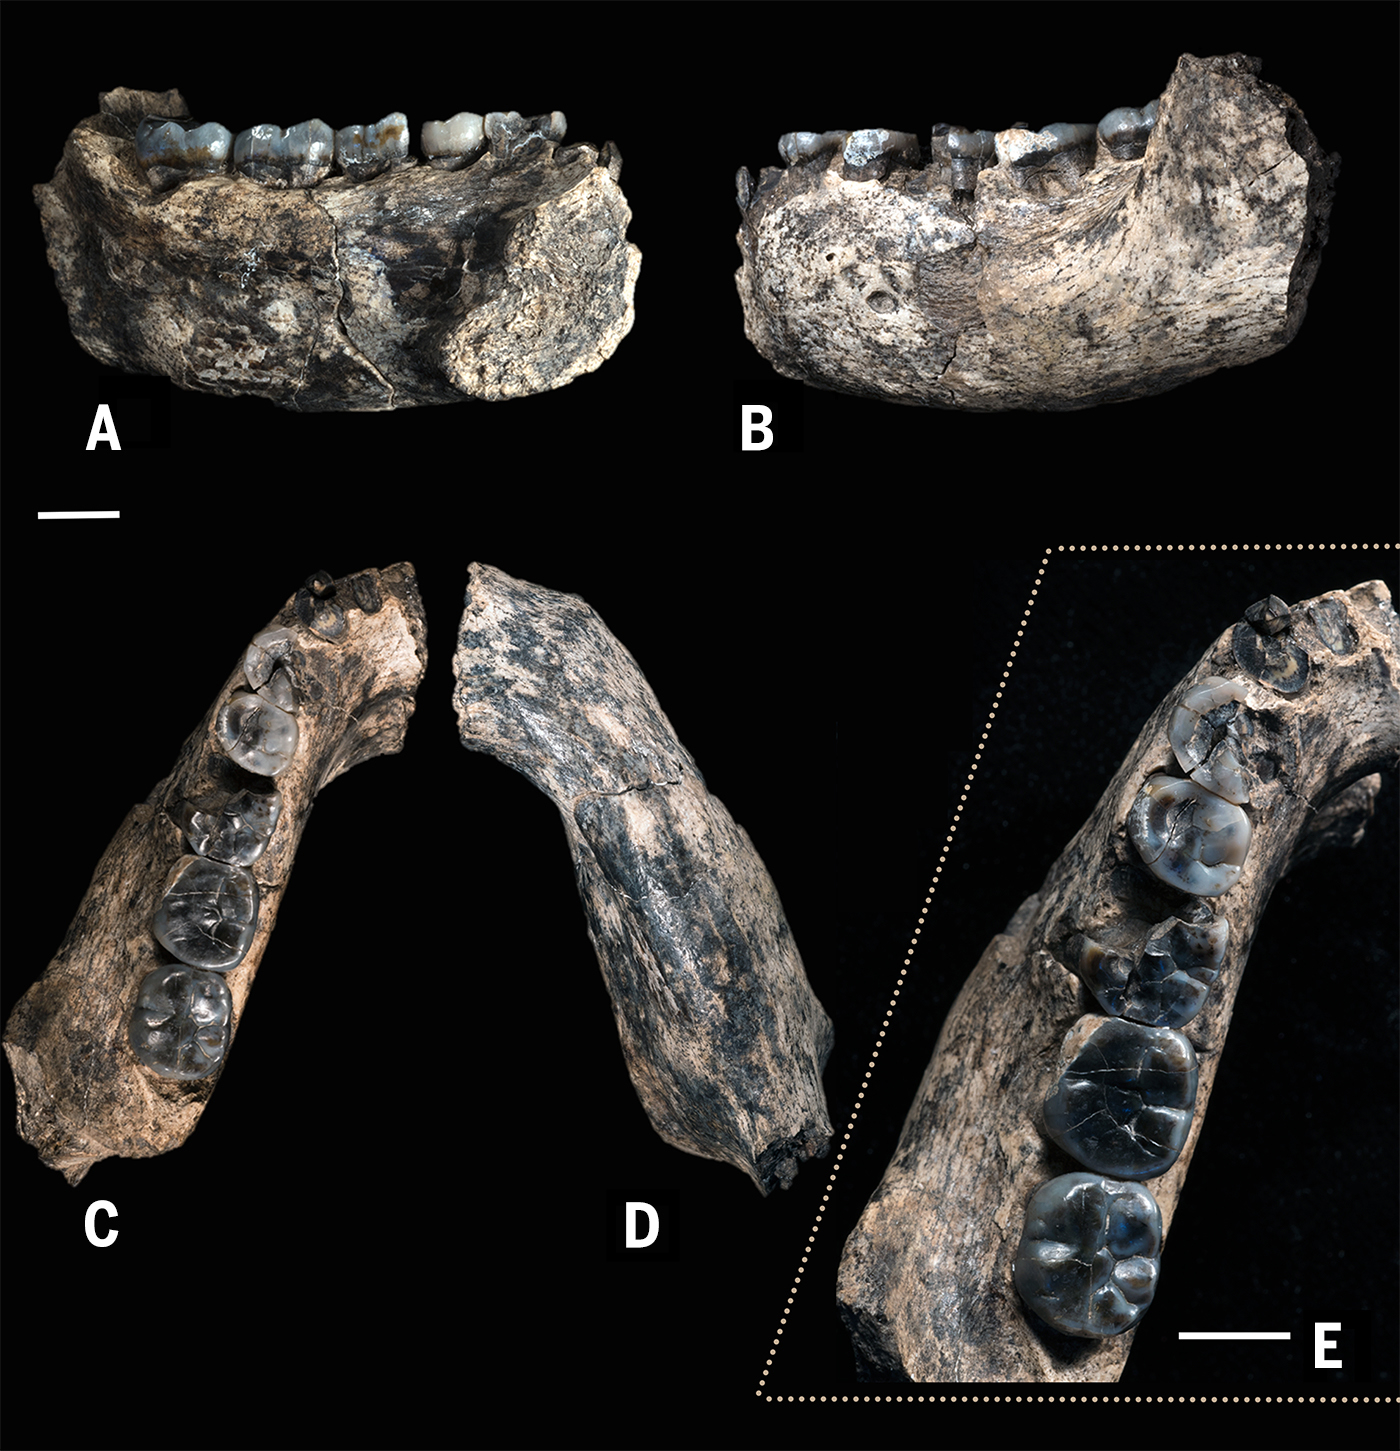 dating fossil teeth Sample location experimental five fossil equid teeth (equus altidens) were collected from two distinct areas of venta micena locality, hereafter sites a and b for the dating analyses, sampling focused on the vestibular part (fig 5.